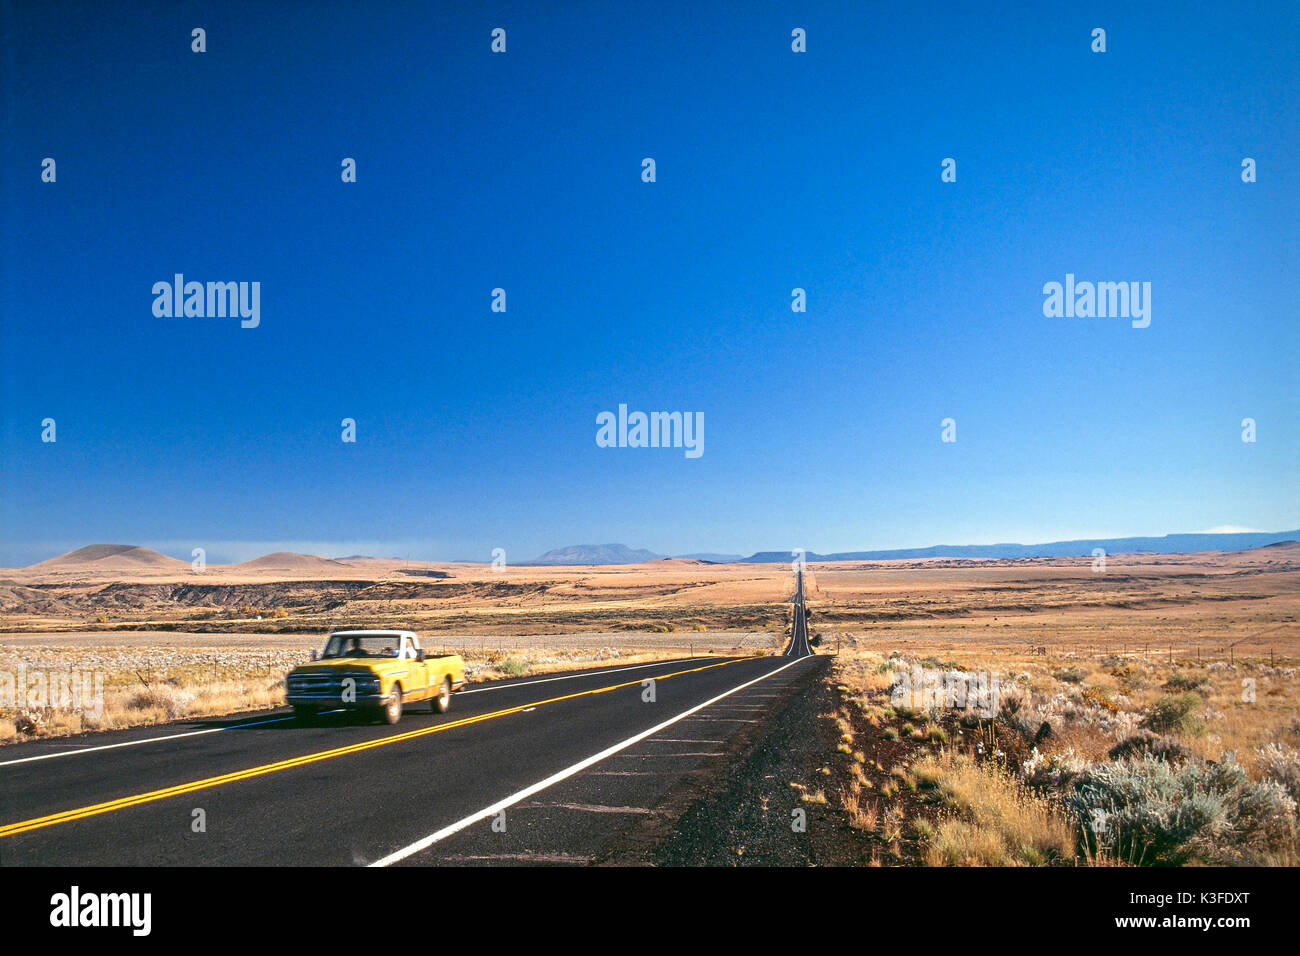 Car drives down a lonesome highway / street - Stock Image